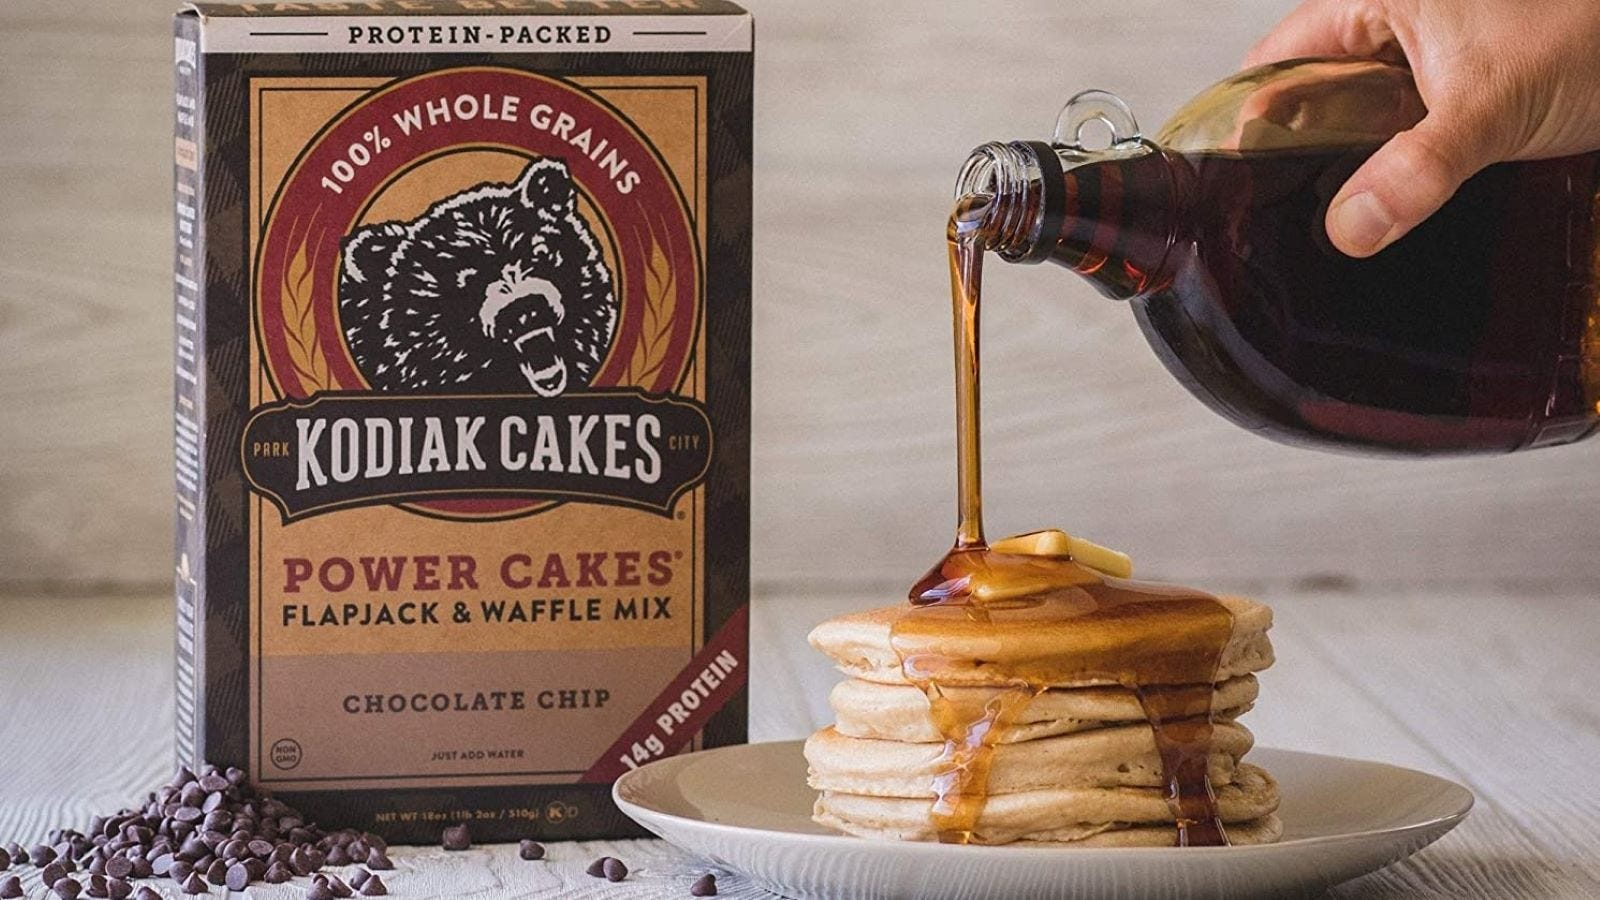 A pack of Kodiak Cakes Flapjack and Waffle Mix next to a stack of pancakes and someone pouring syrup on them.